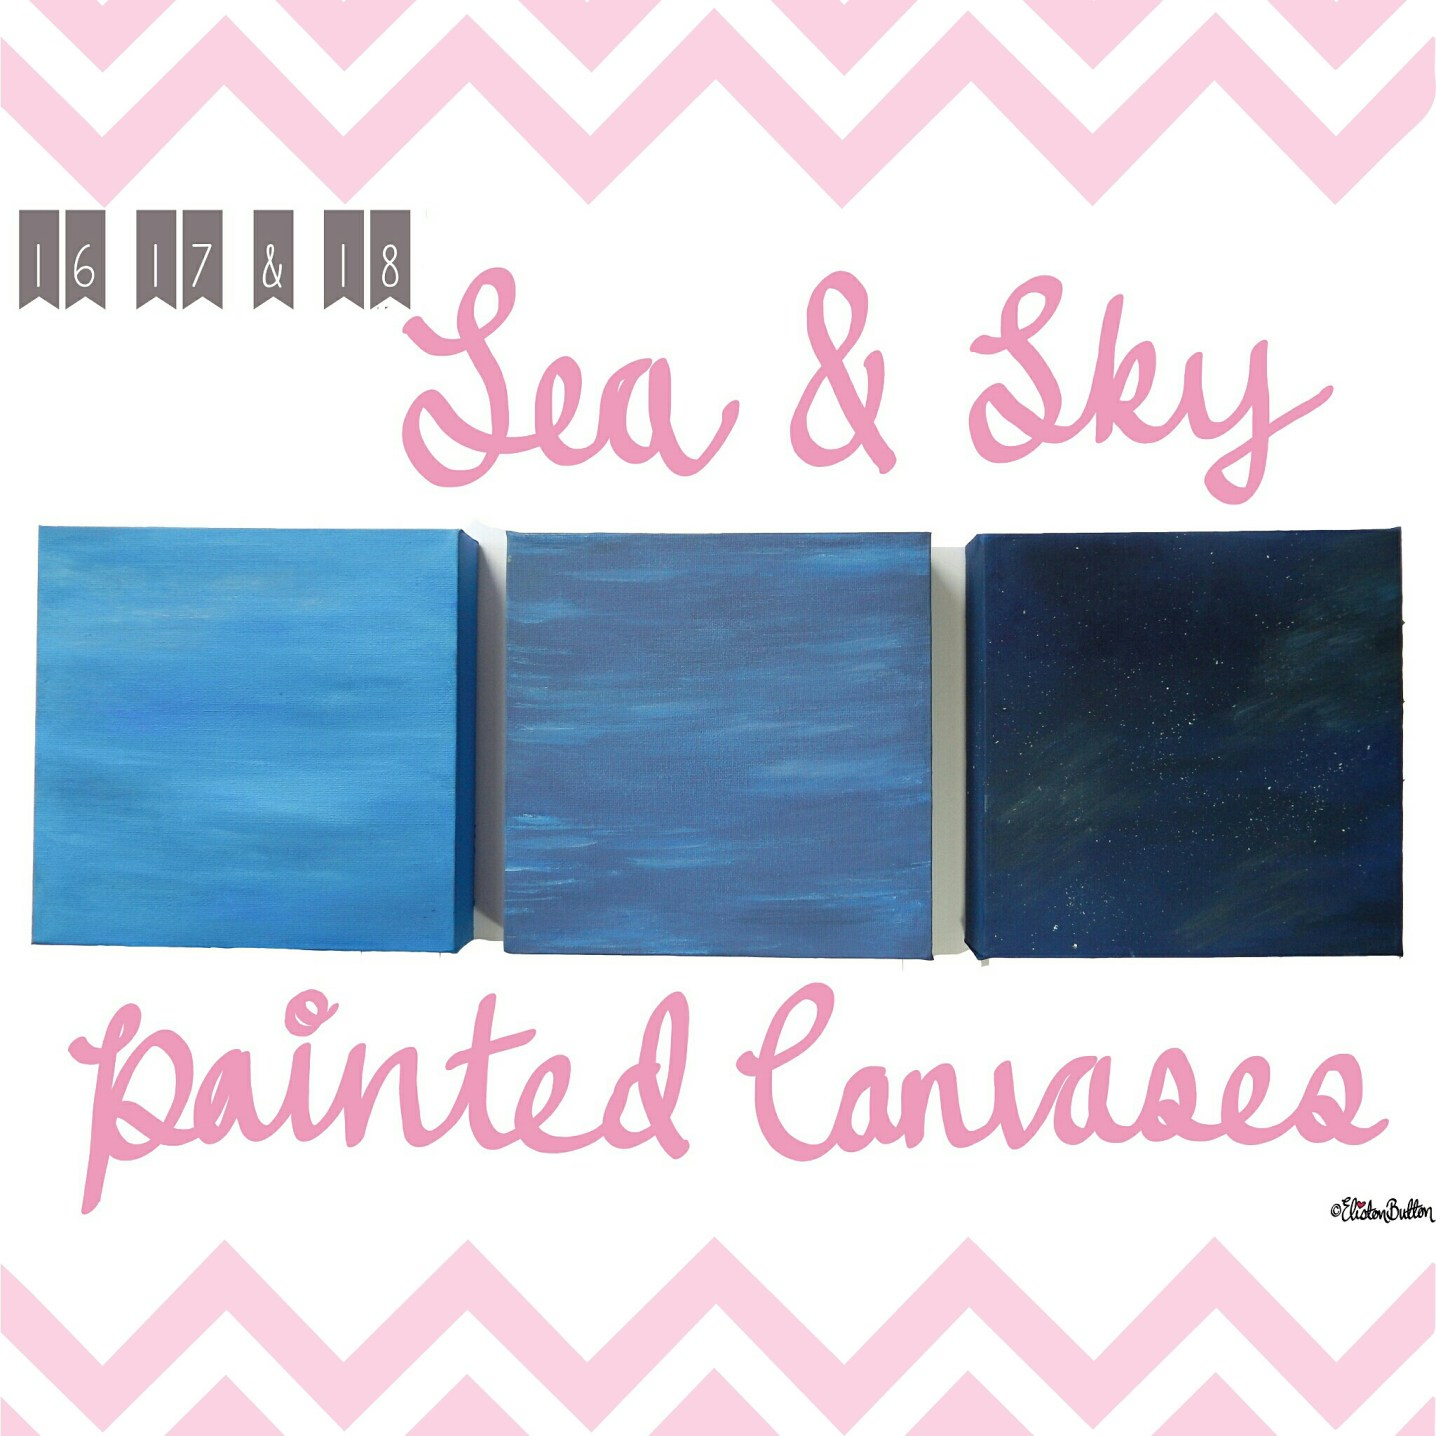 Sea and Sky Painted Canvases - Around Here...May 2015 at www.elistonbutton.com - Eliston Button - That Crafty Kid – Art, Design, Craft & Adventure.